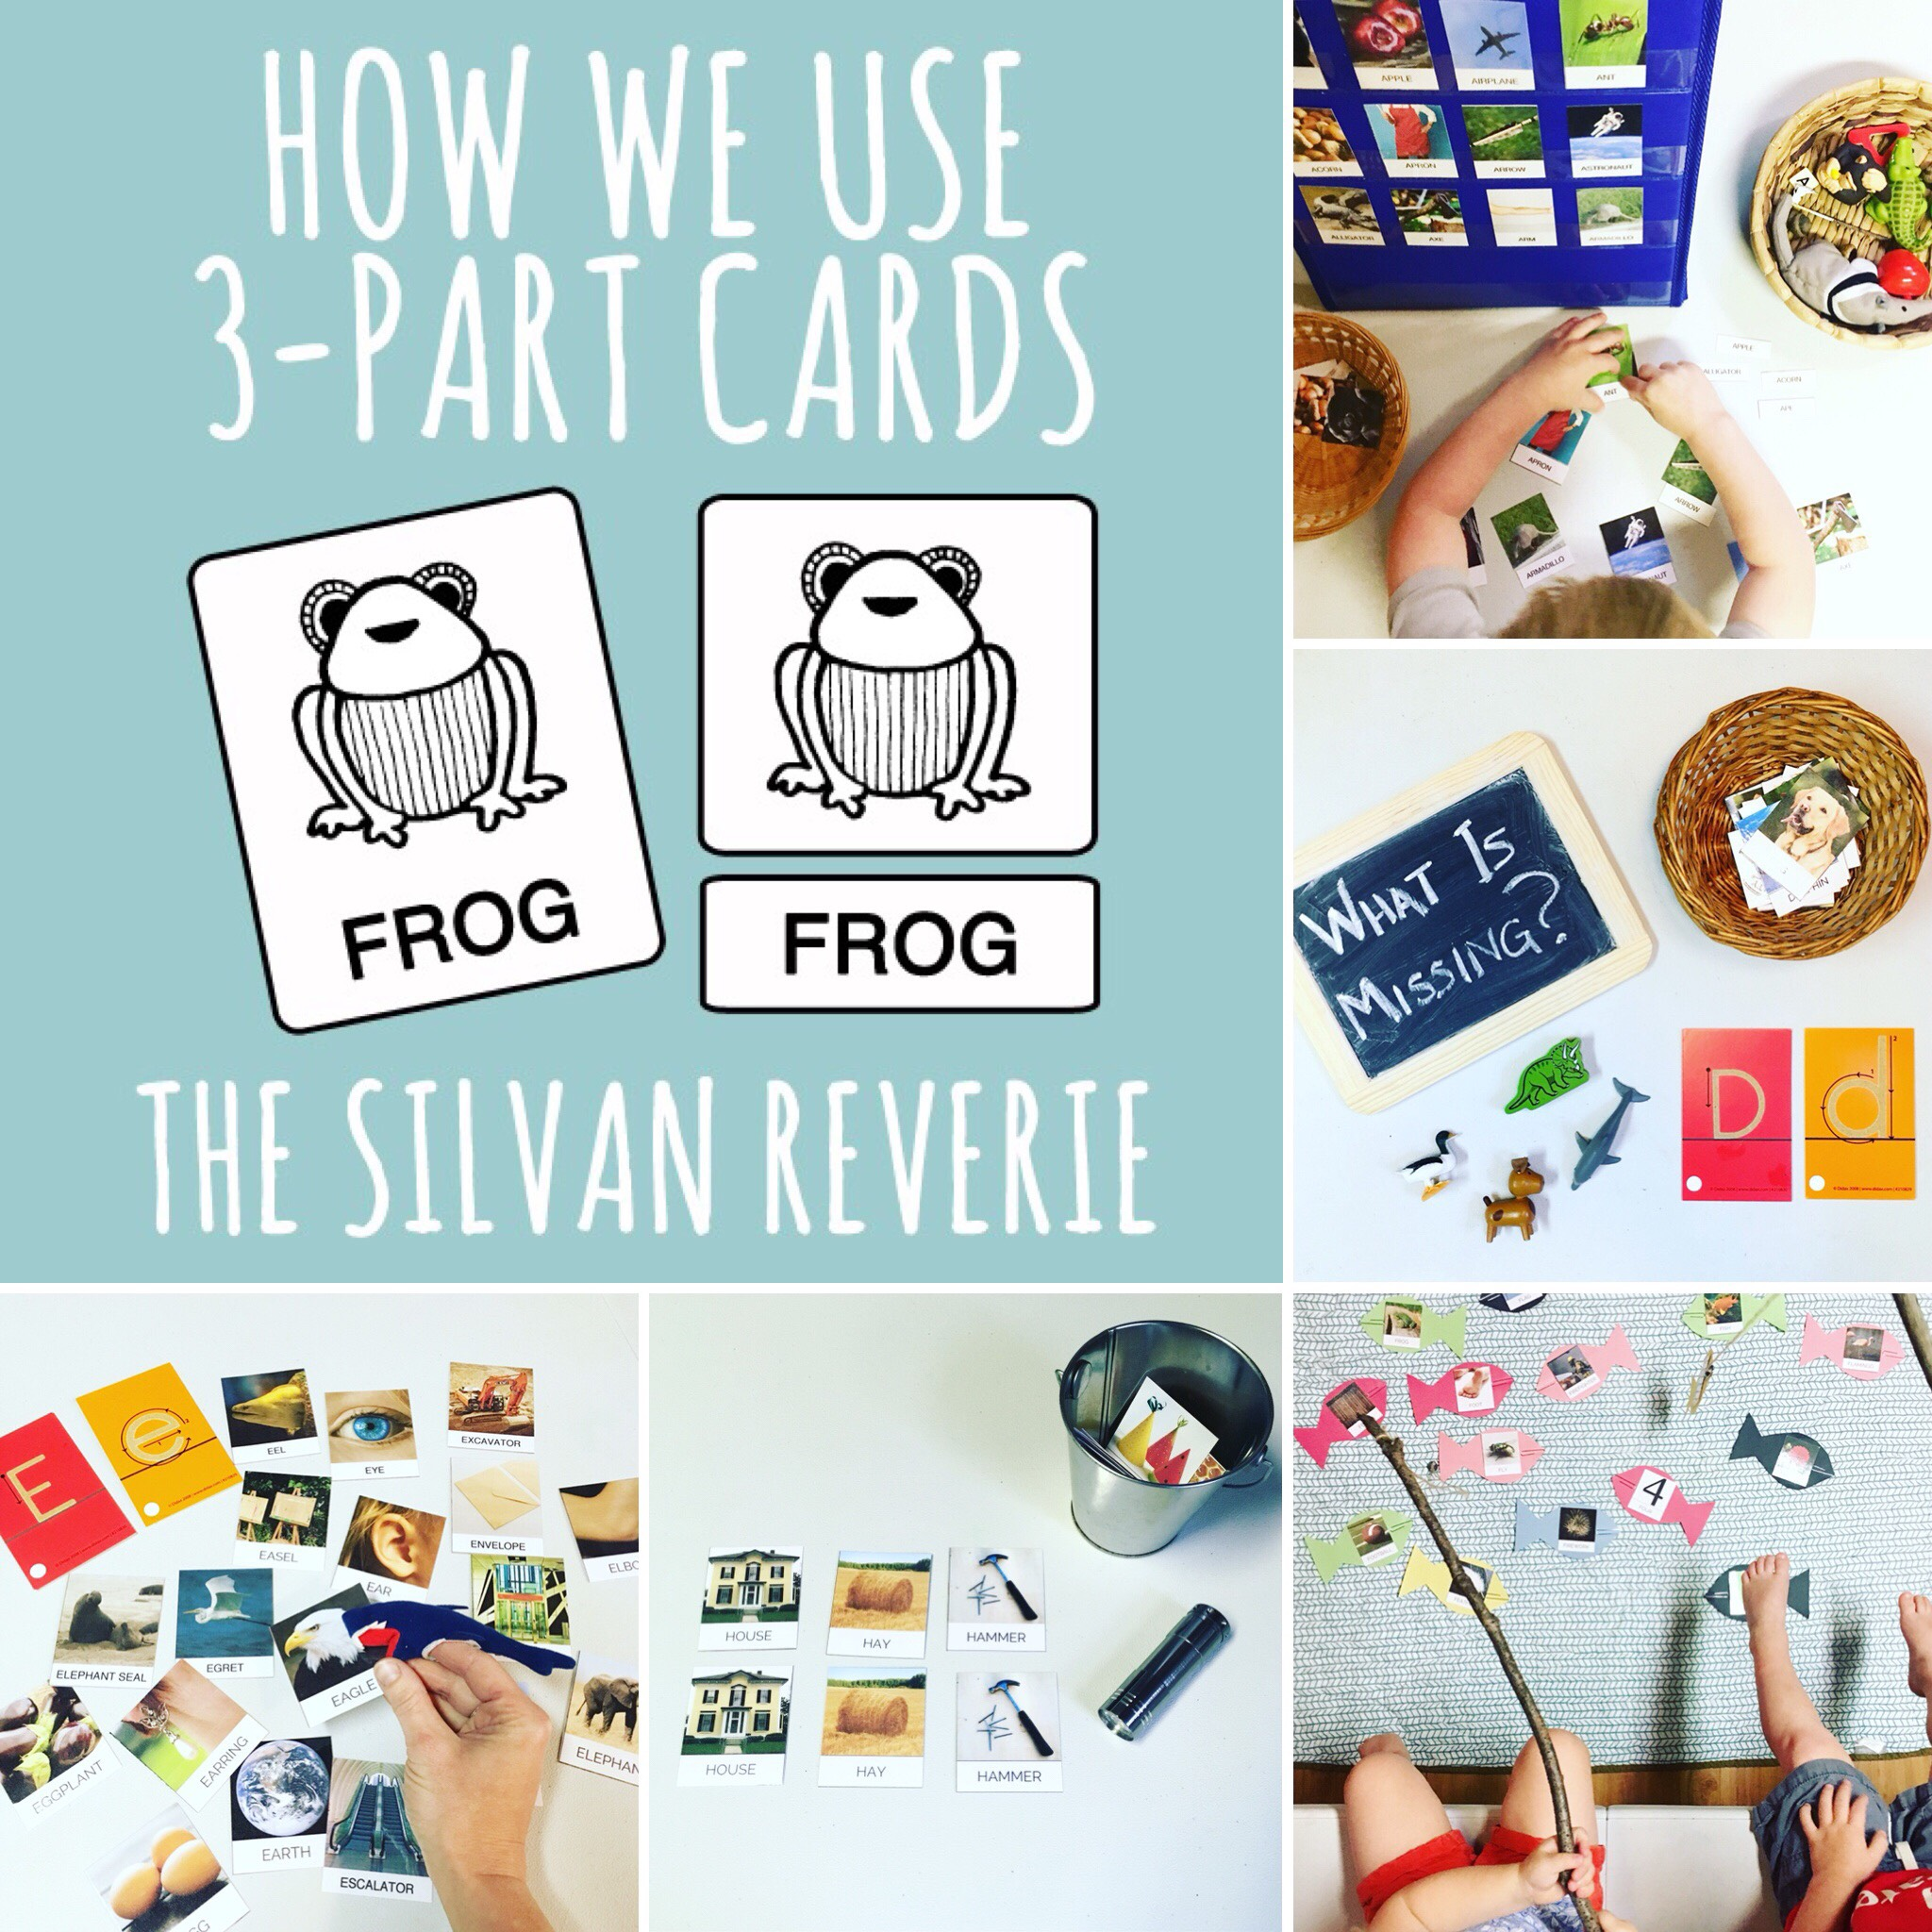 3-PART CARDS